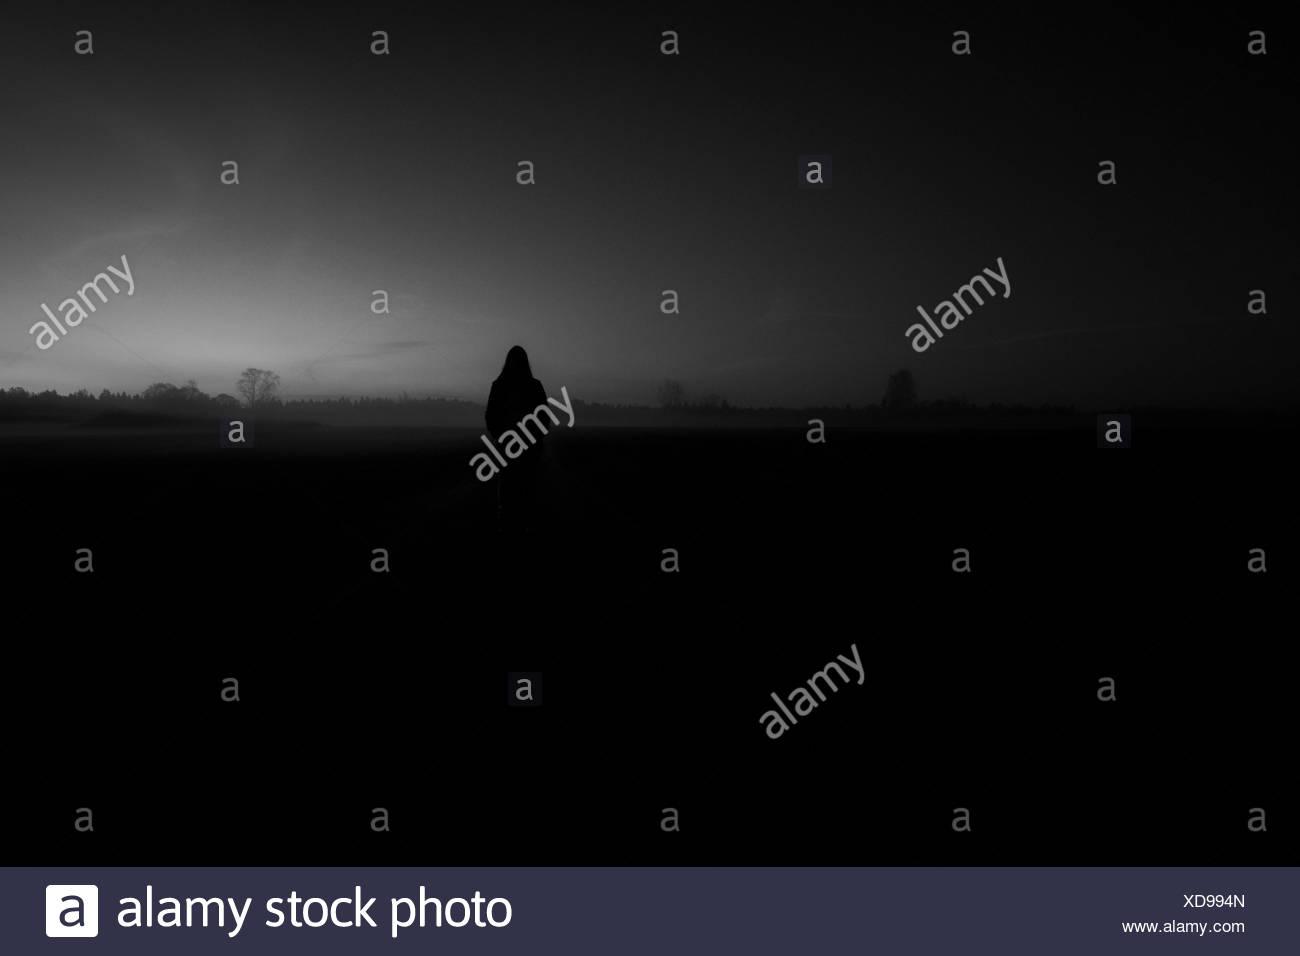 Long-exposure photography with woman at night and fog Stock Photo